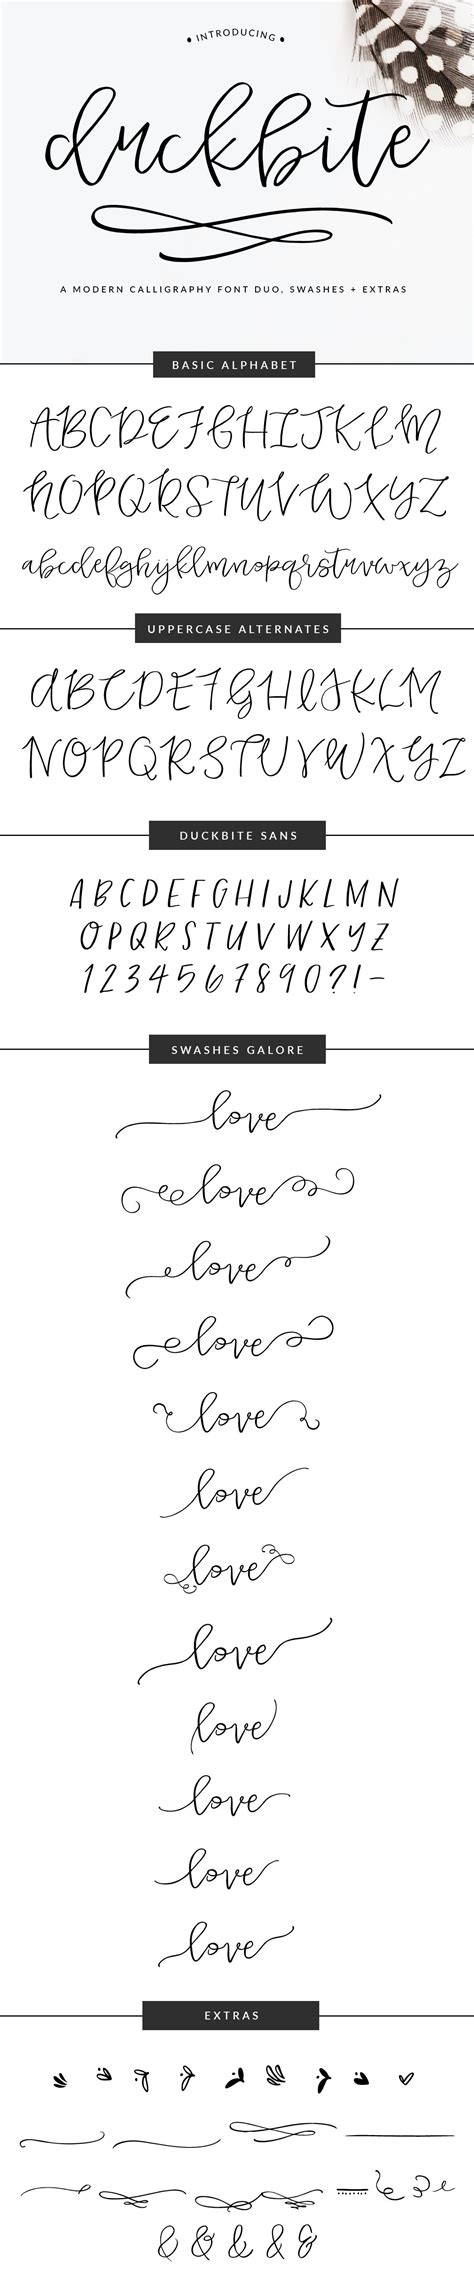 letter from ceo duckbite swash calligraphy font fonts amp letters 22849 | fd35785eb98fe41c13fb2c81c8cda658